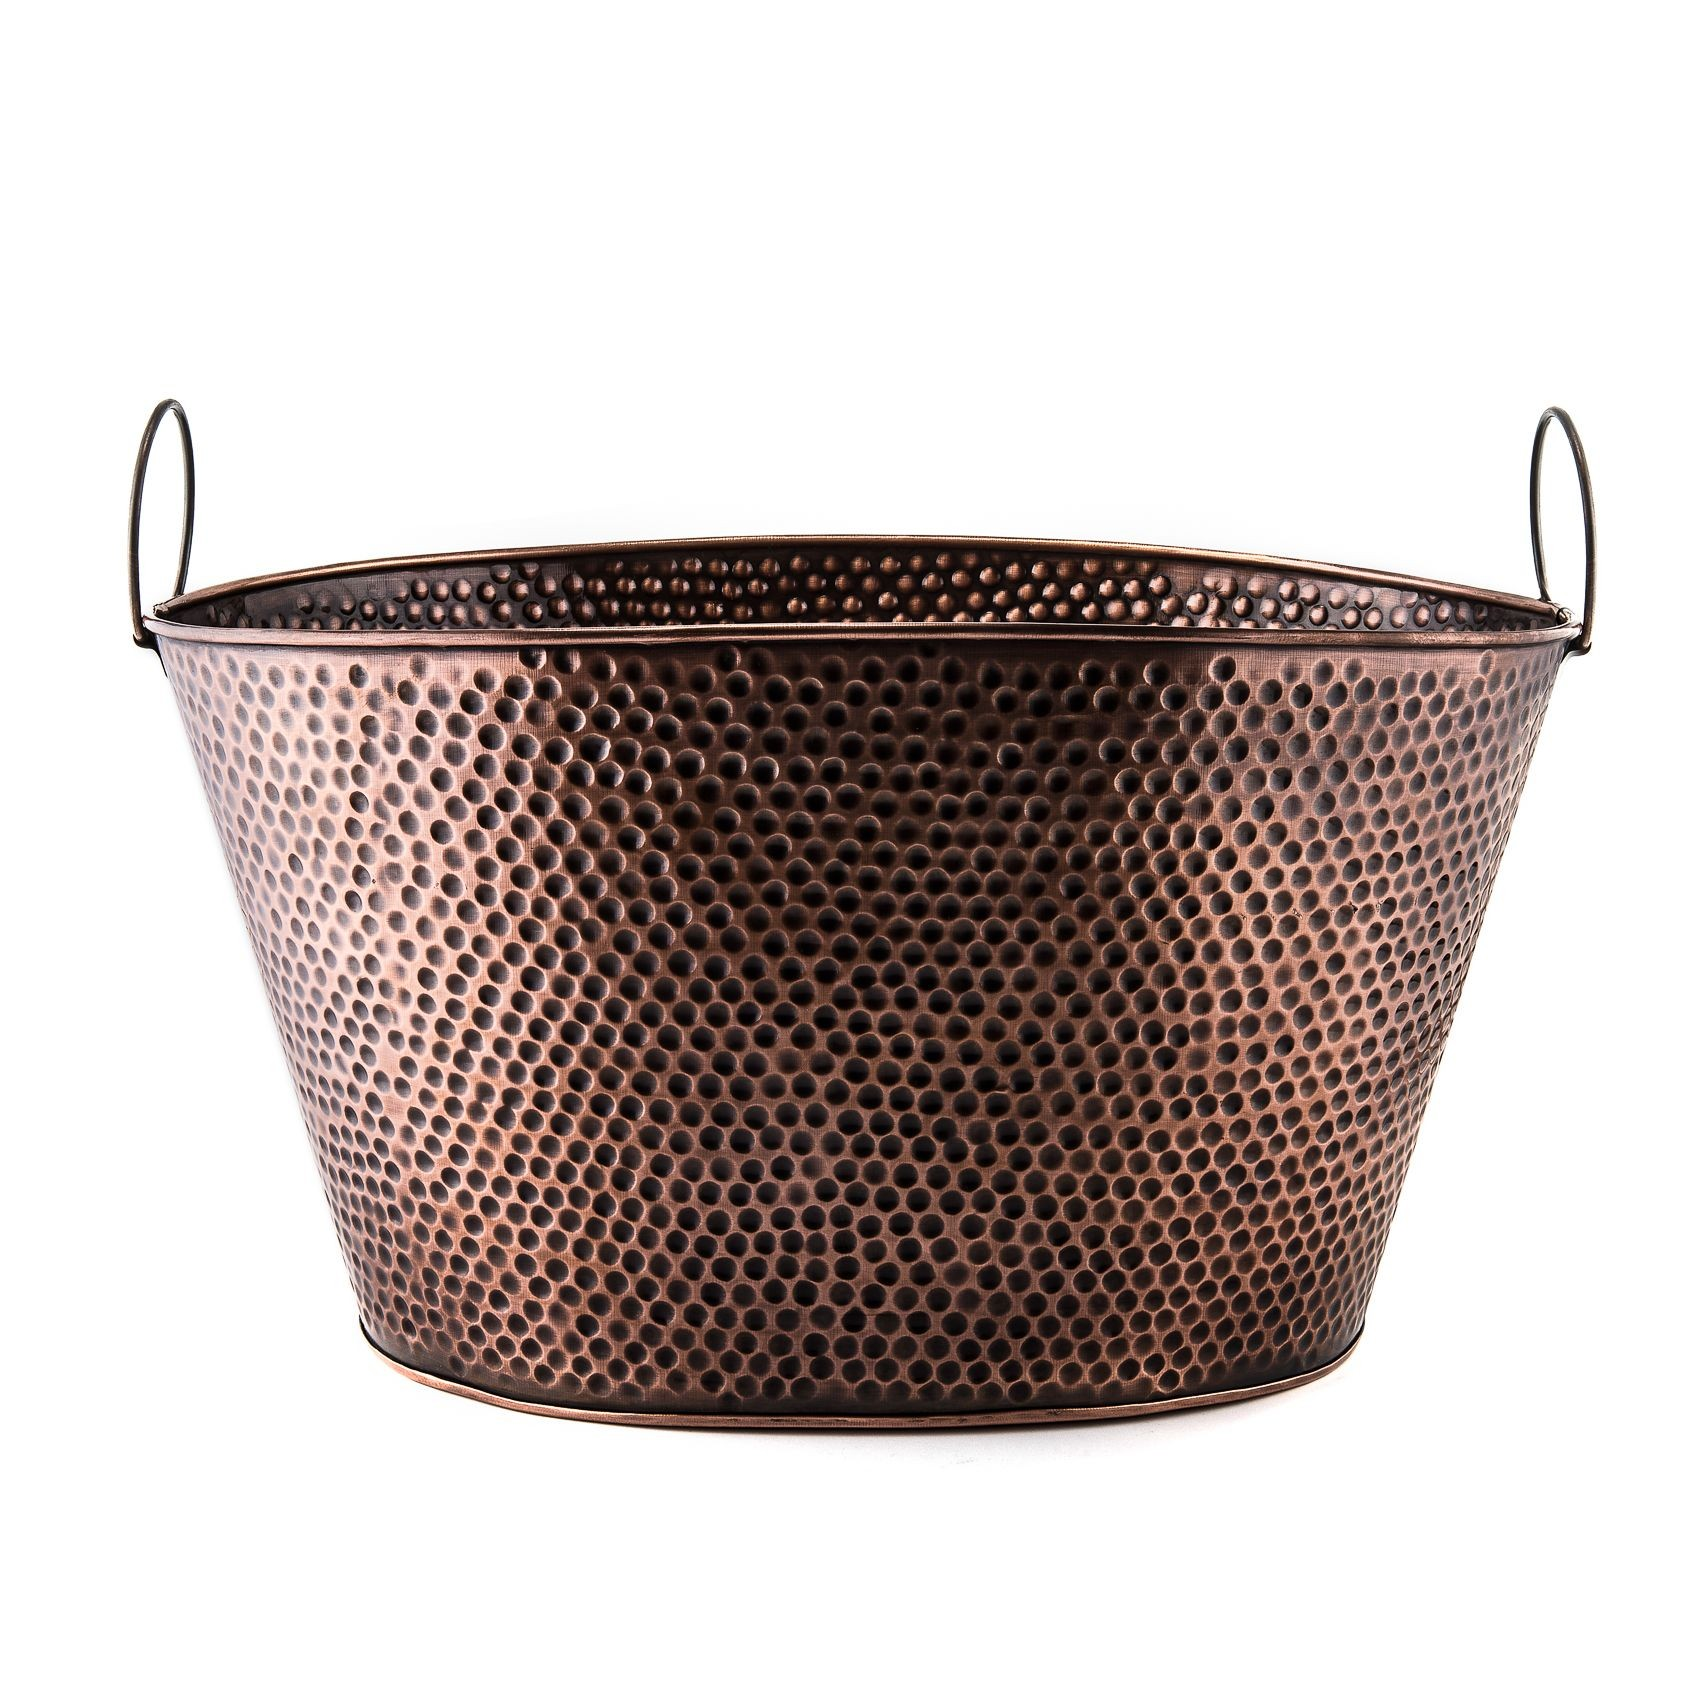 Old Dutch International 636 Antique Copper Party Tub, 8 Gallon